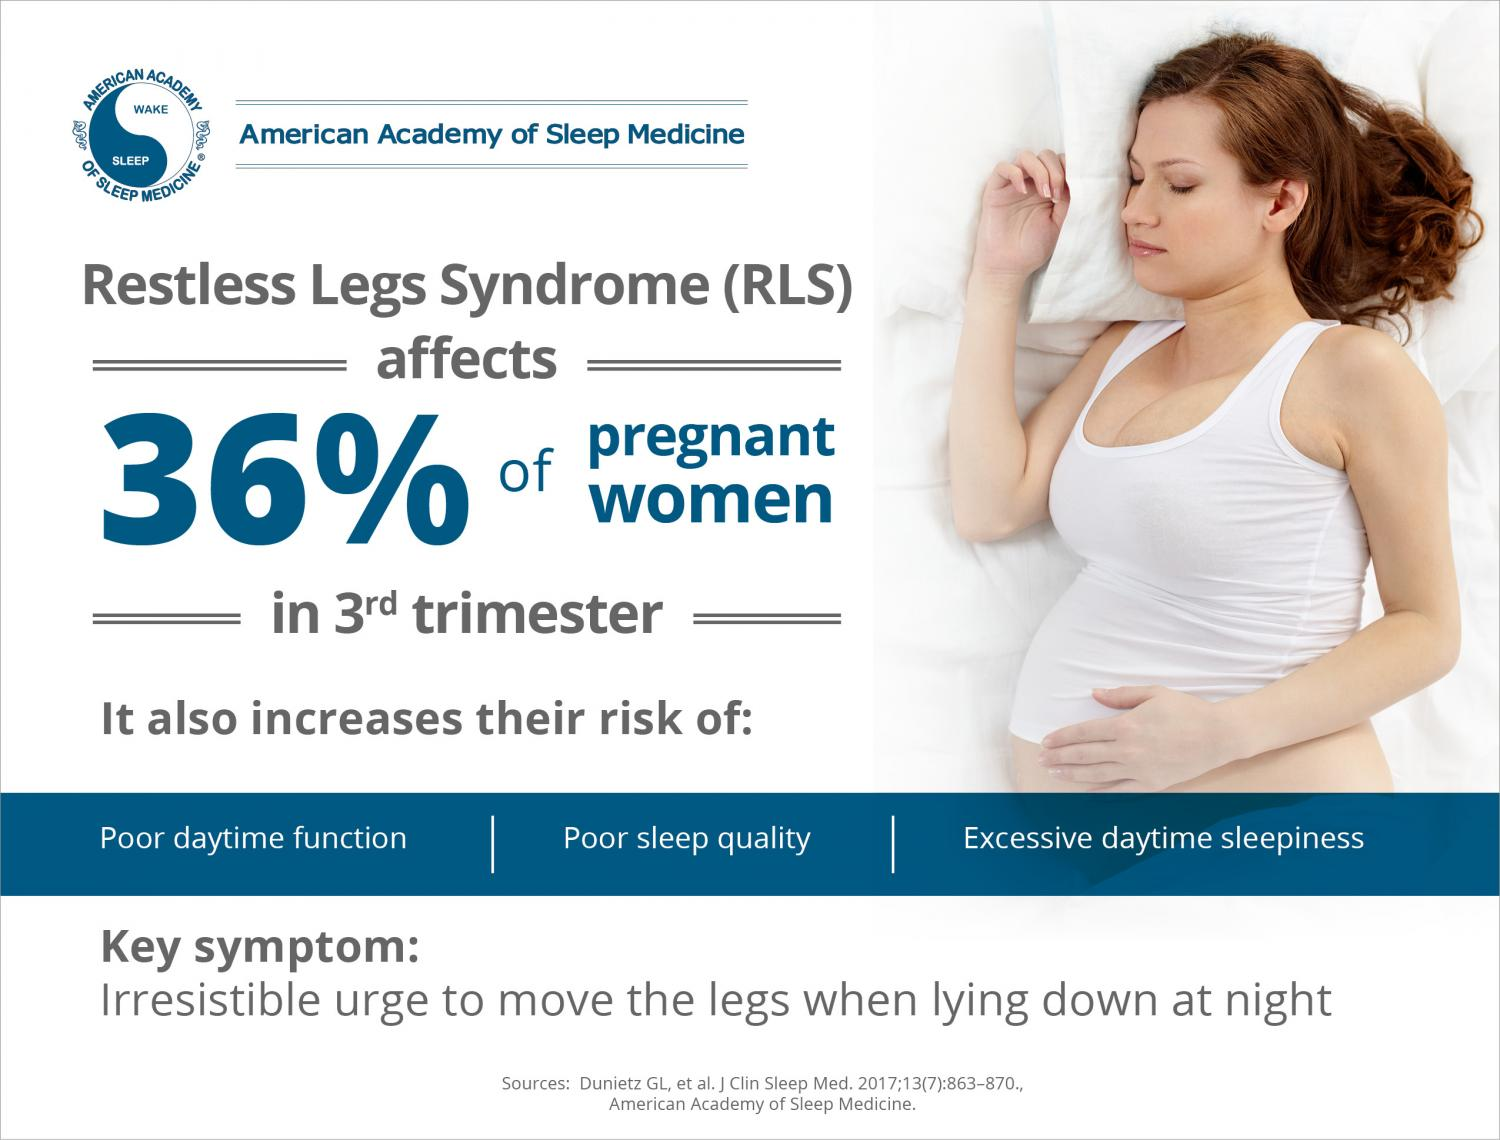 an analysis of restless legs syndrome Restless legs syndrome symptoms are very different from other symptoms of multiple sclerosis  a systematic review and meta-analysis.